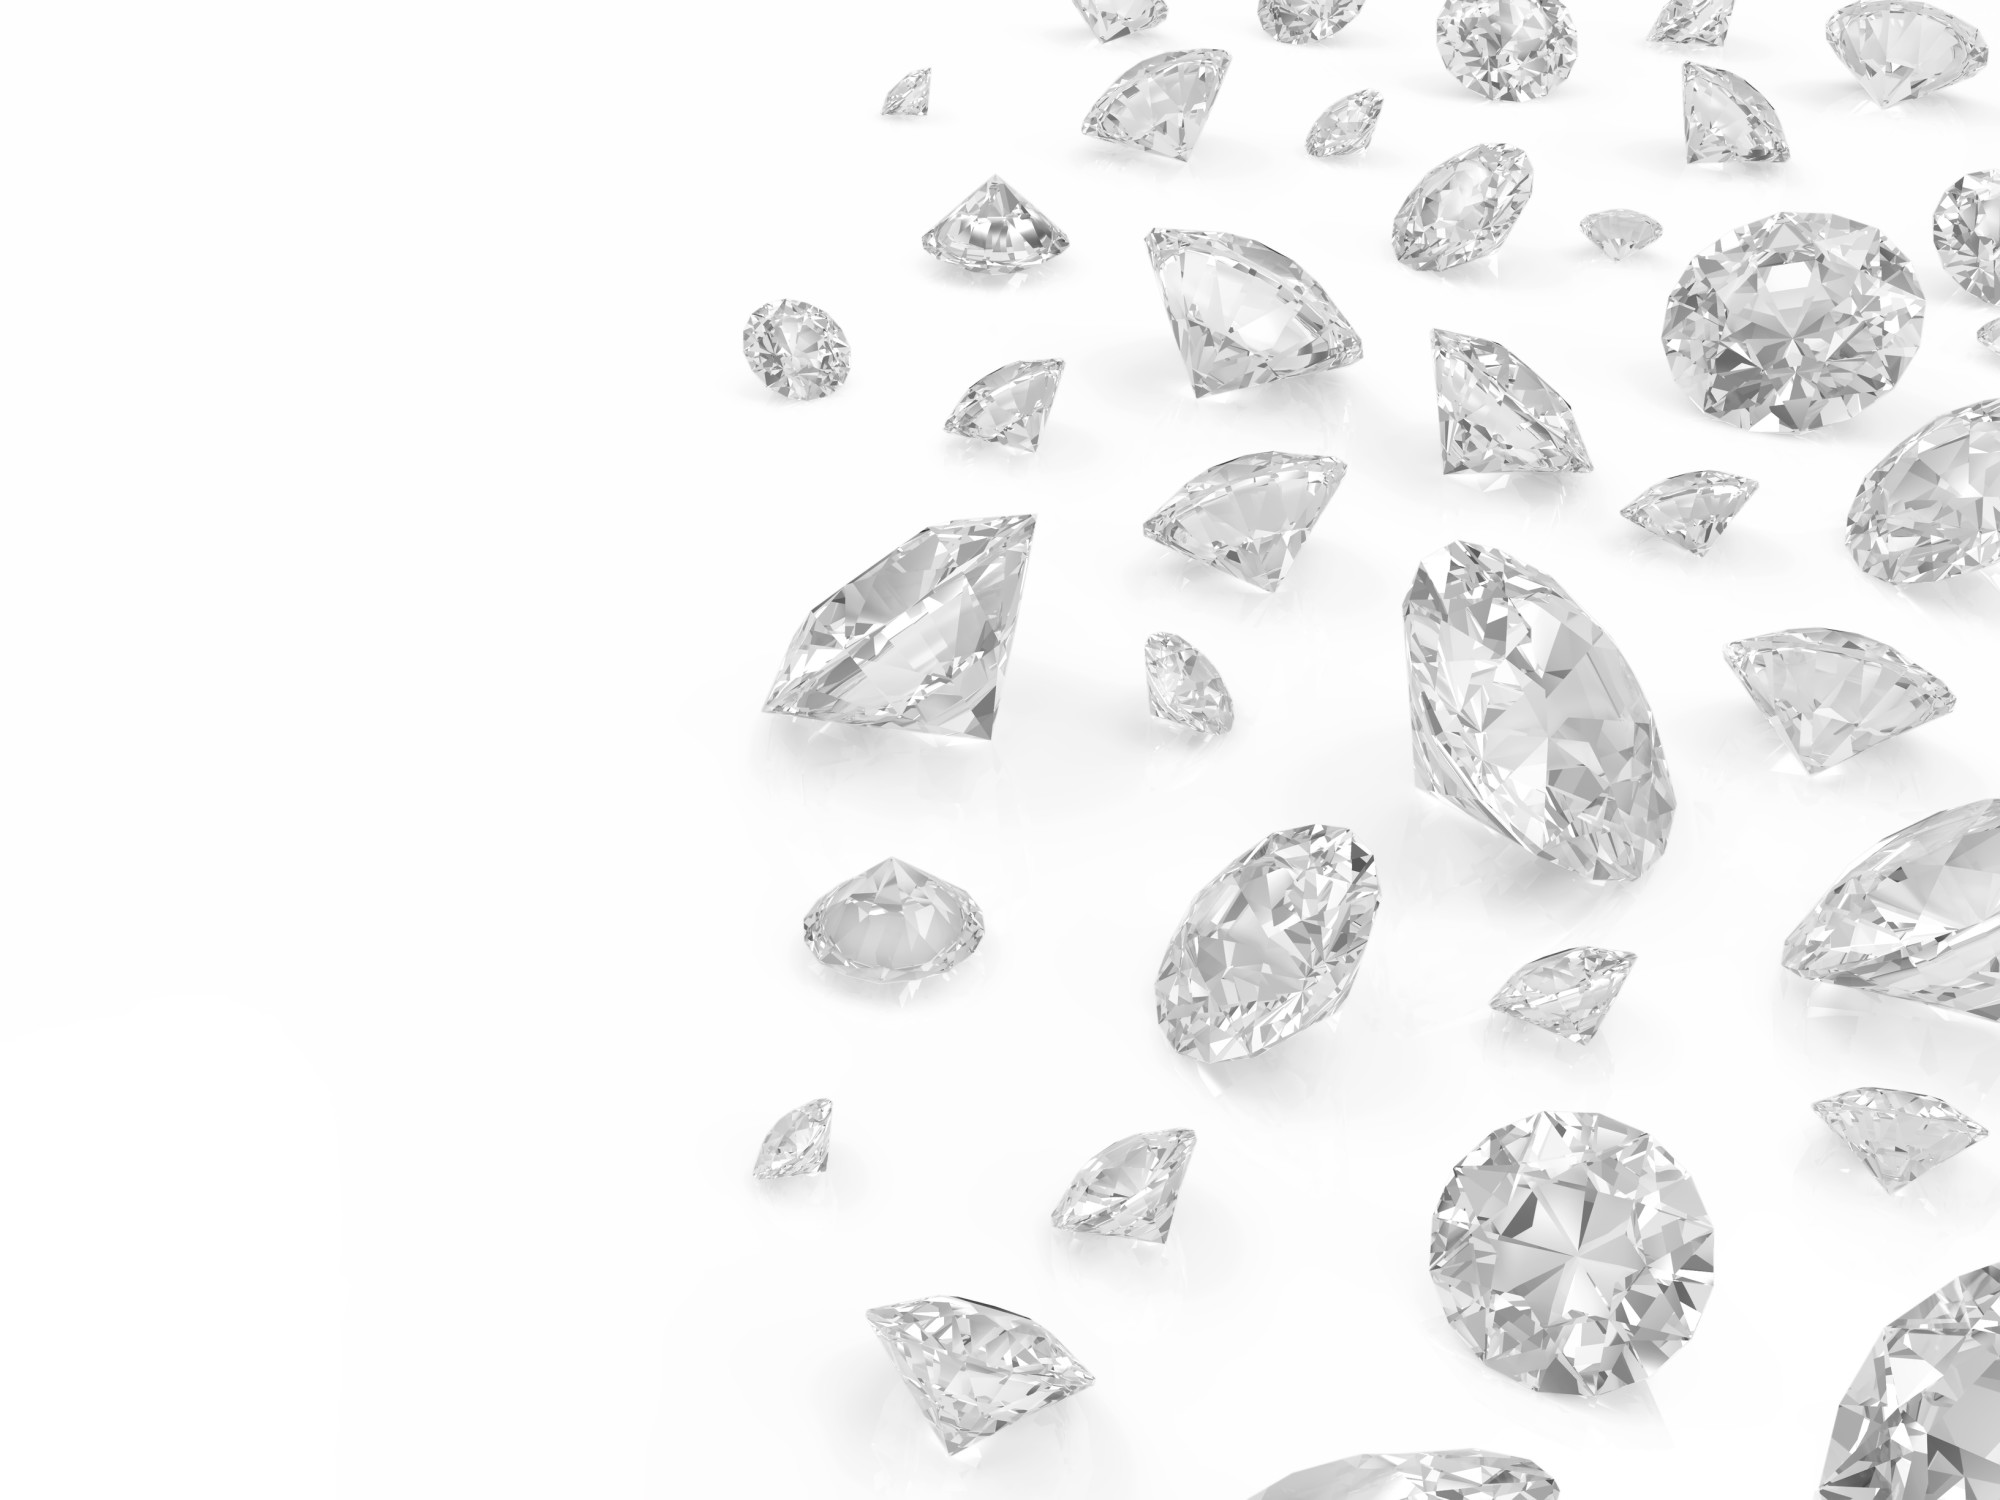 Crystal clipart geode Background clipart Diamonds background clipart